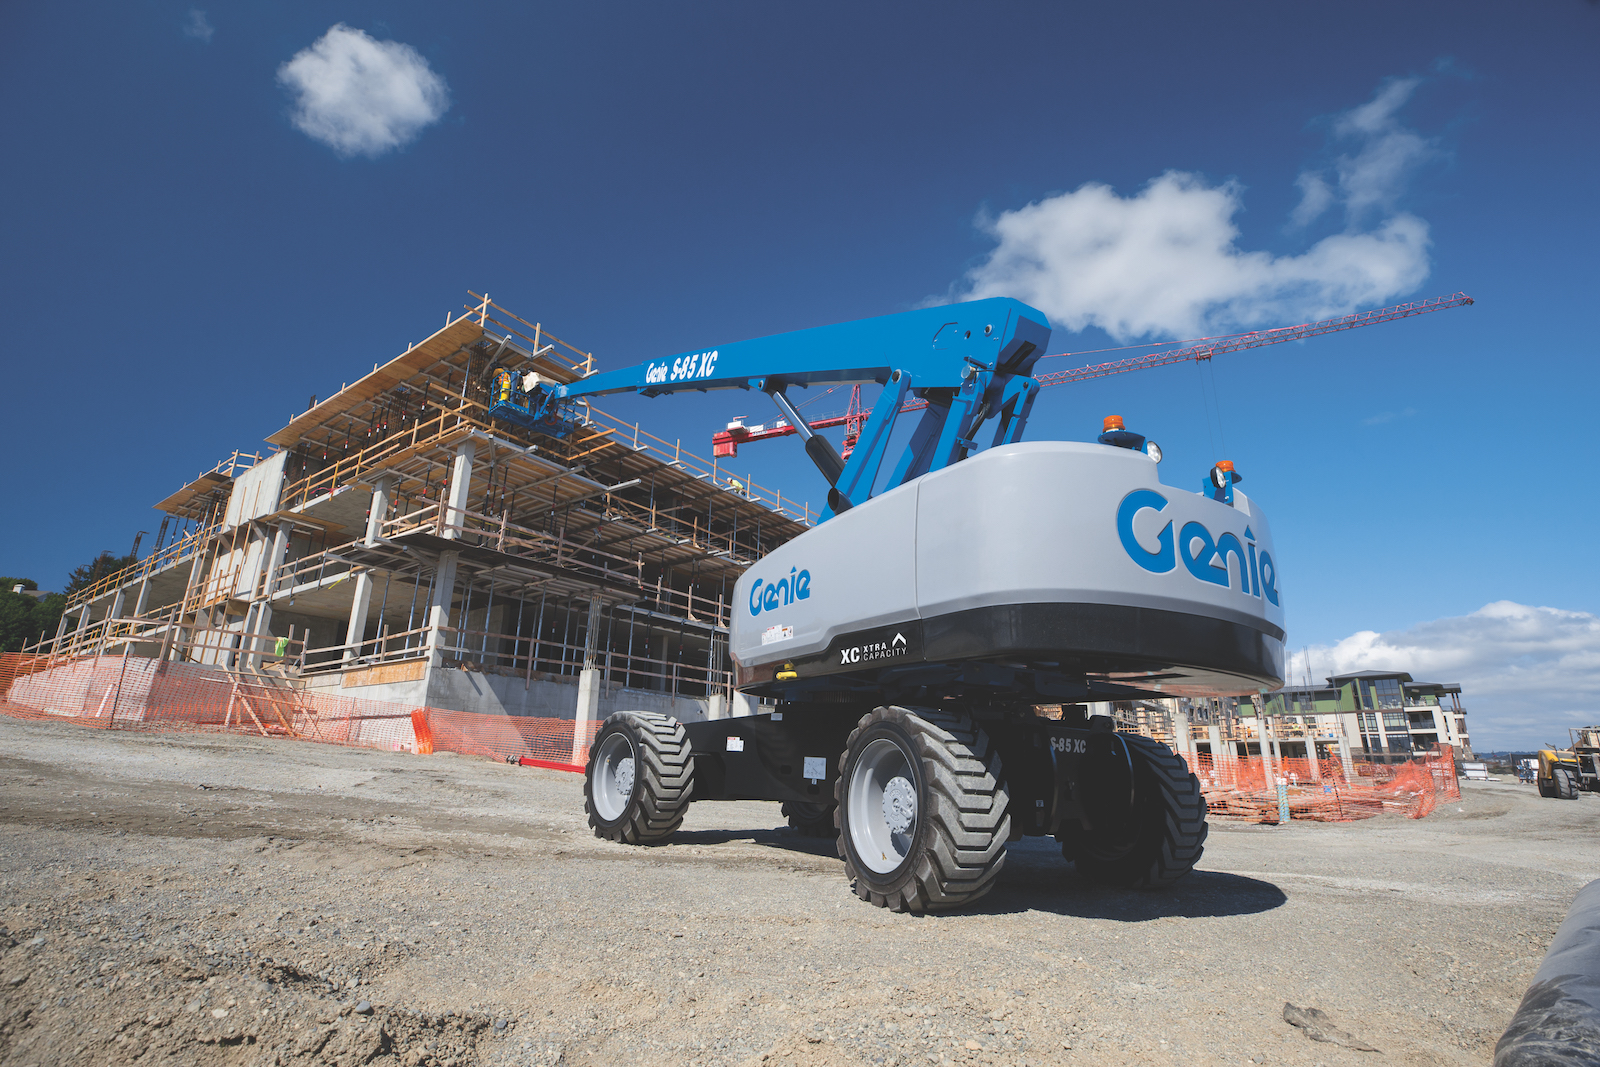 Genie XC design allows an unrestricted platform capacity of 660 pounds